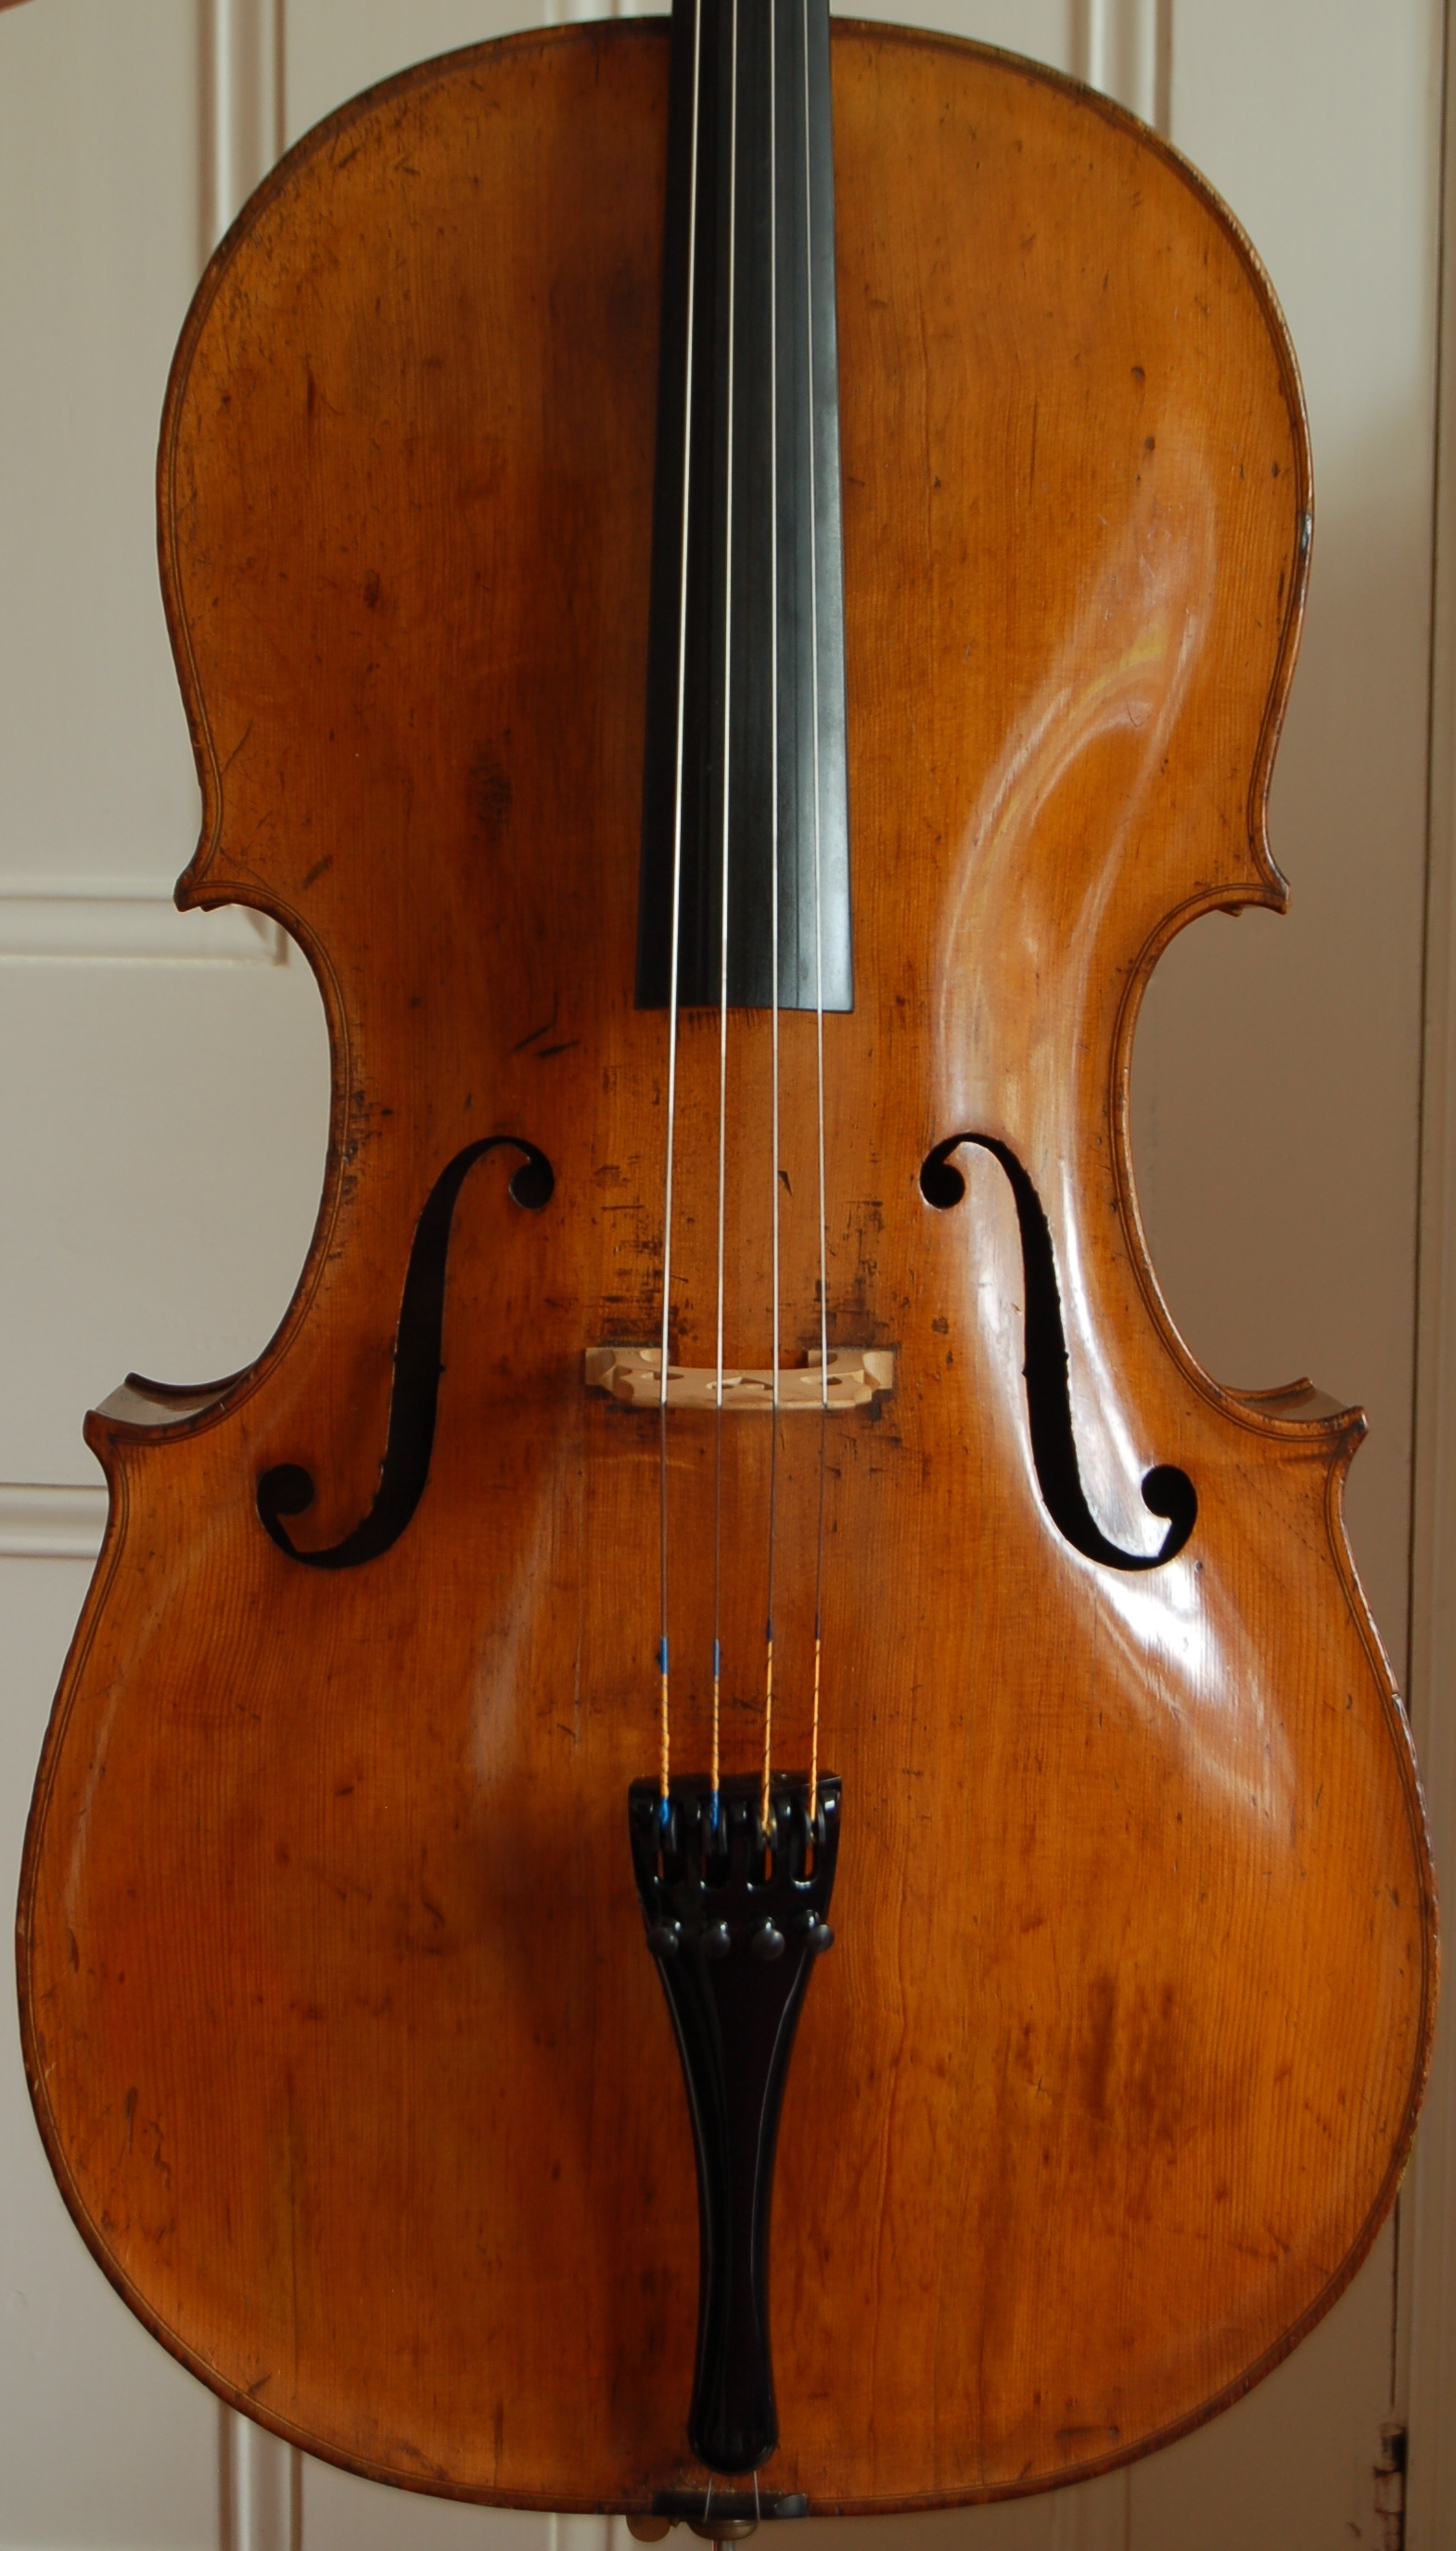 Henry Jay cello